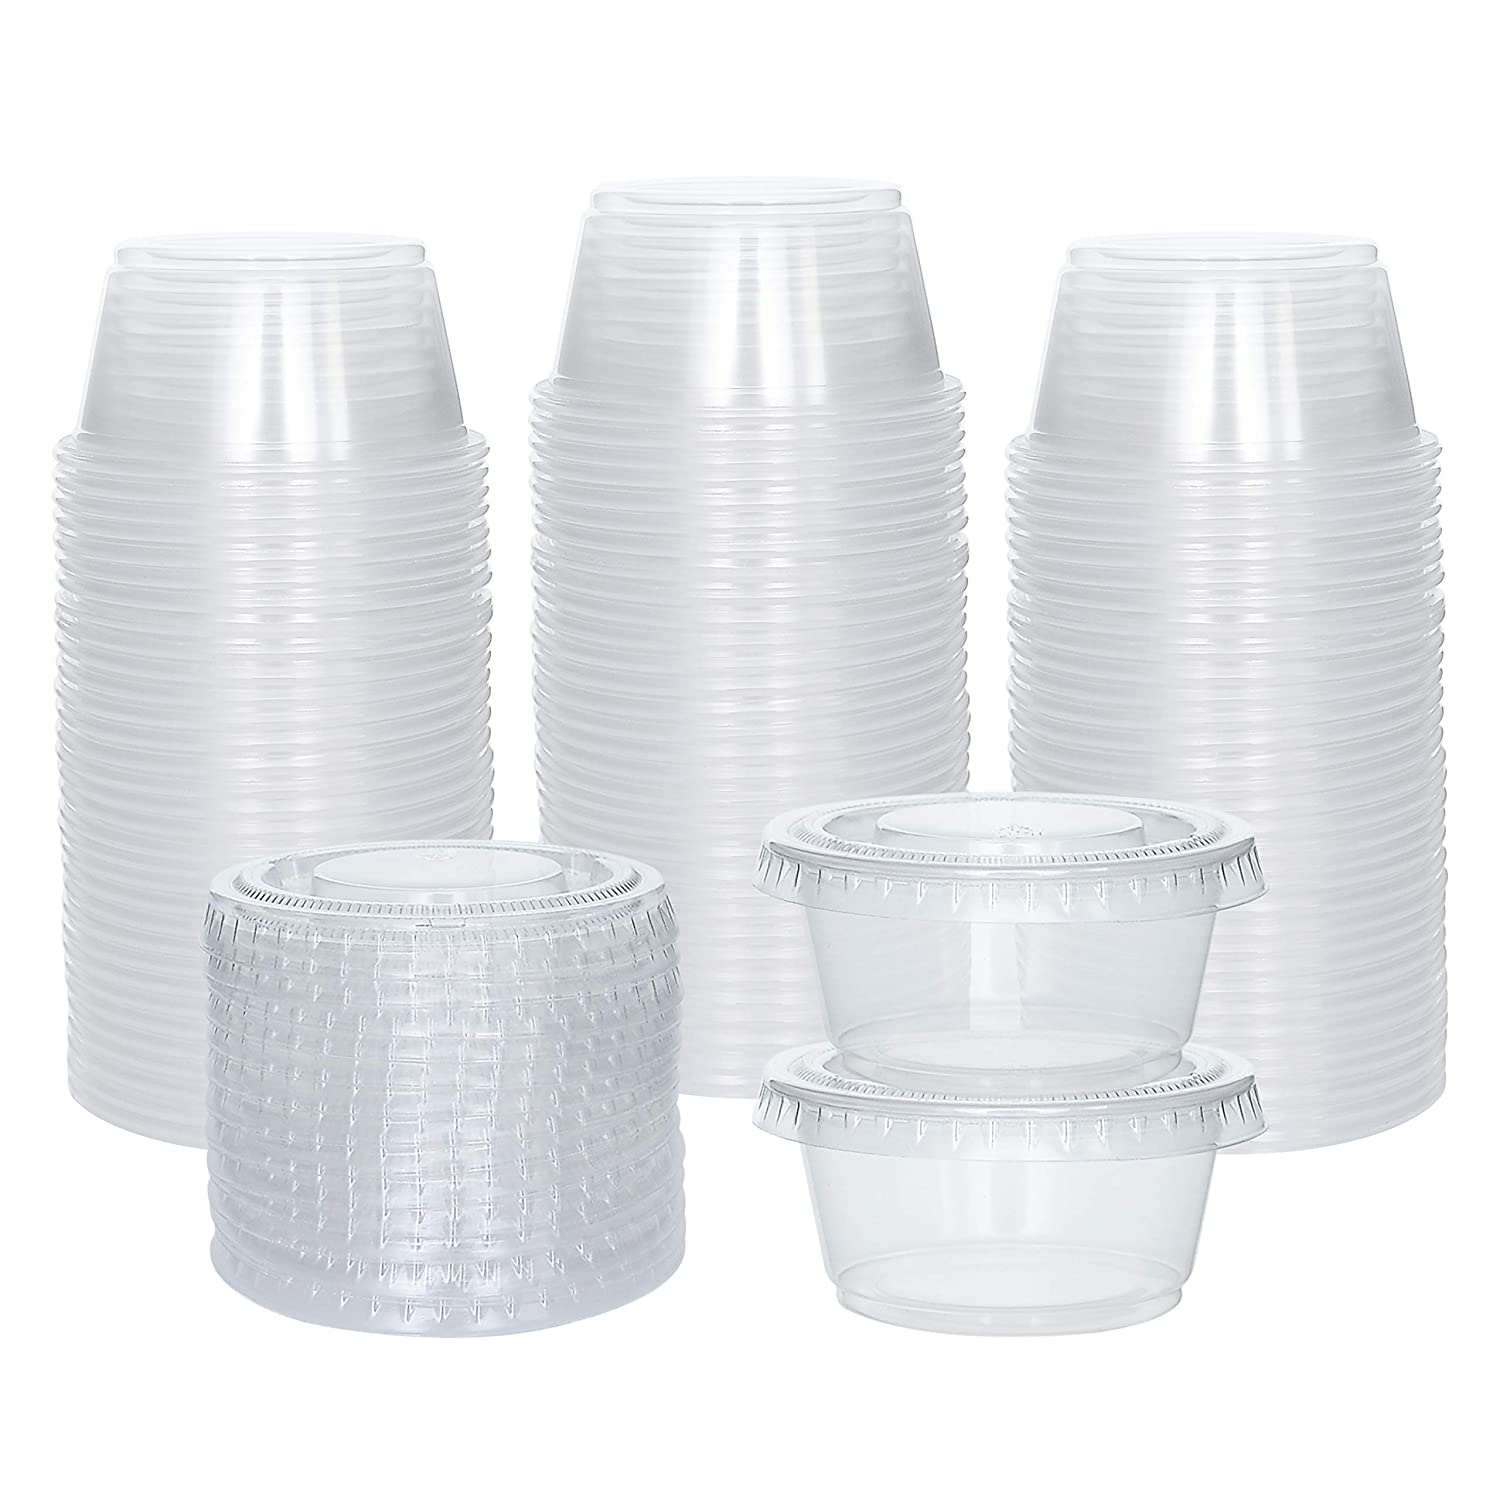 [100 Sets] 2 oz Small Plastic Containers with Lids, Jello Shot Cups with Lids, Disposable Portion Cups, Condiment Containers with Lids, Souffle Cups for Sauce and Dressing